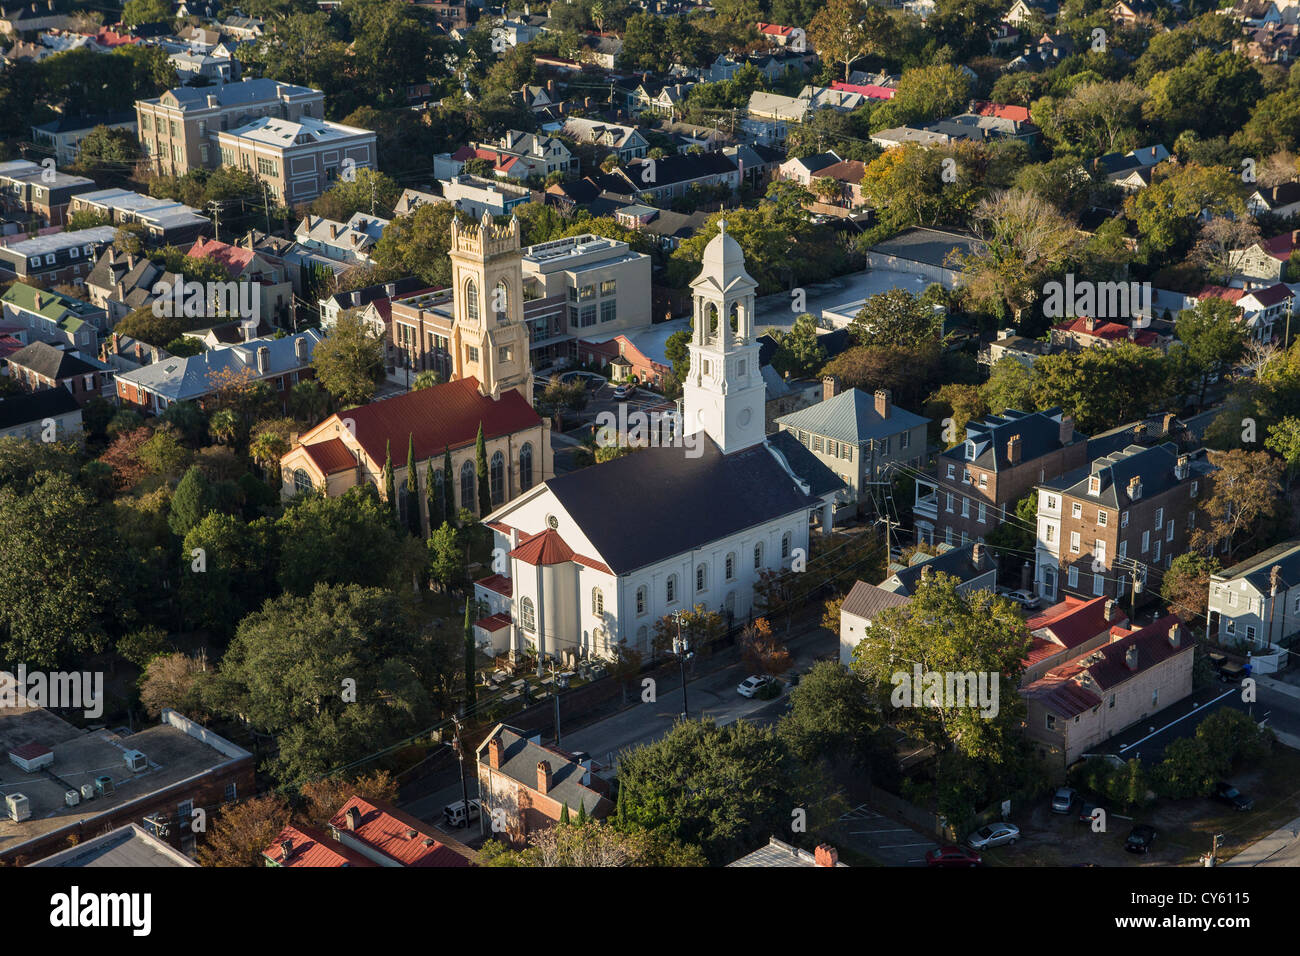 Aerial view of St John's Lutheran Church next to the Unitarian Church Charleston, South Carolina. - Stock Image